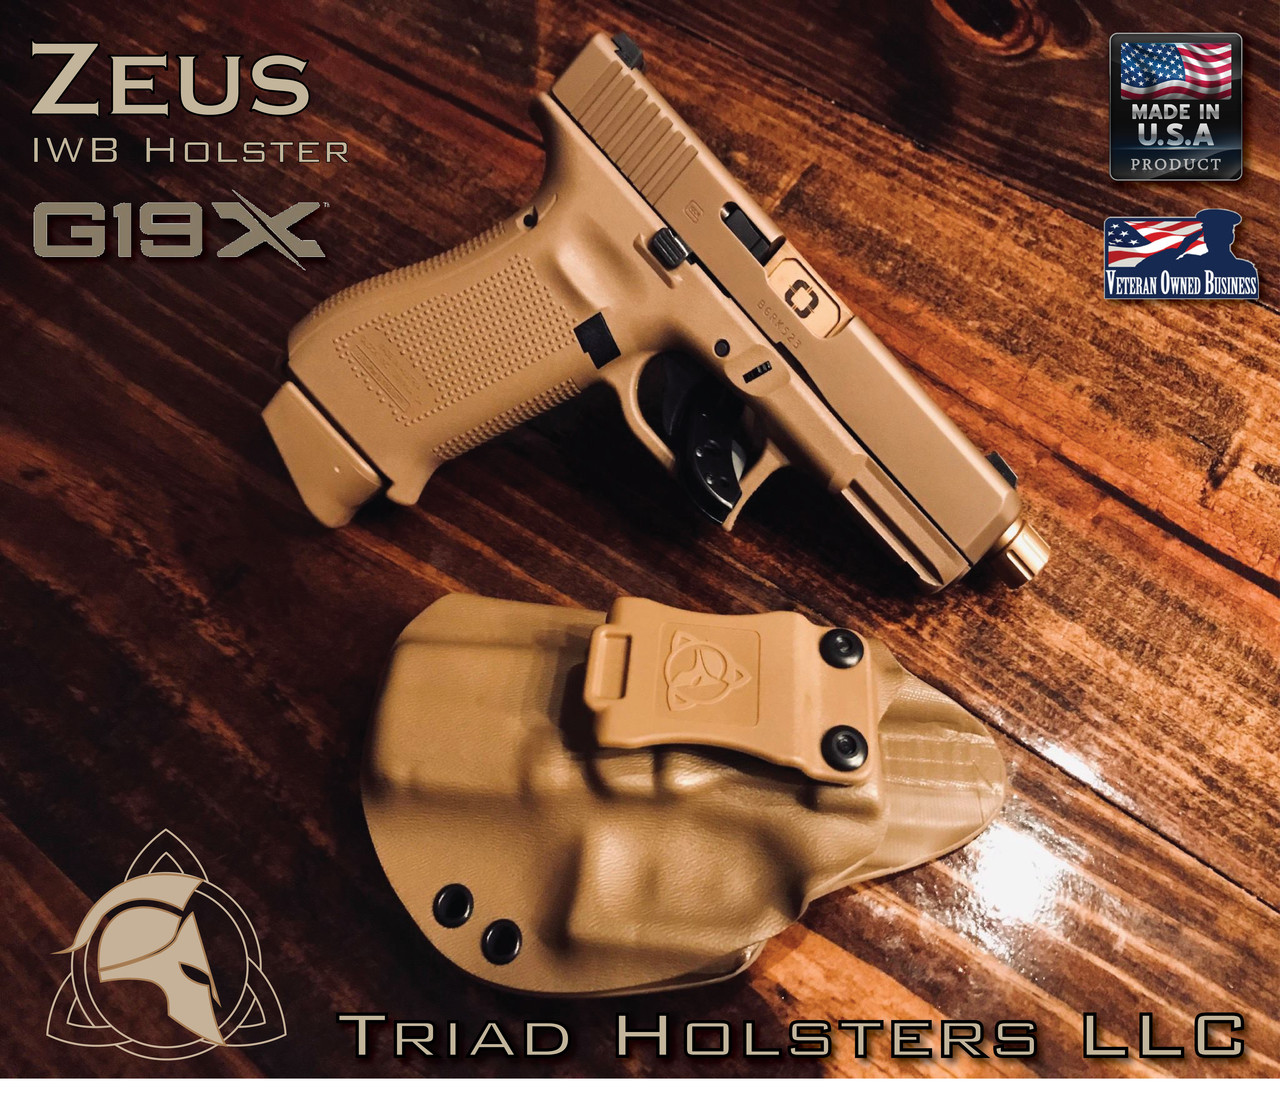 Kydex Holster Glock 19X Zeus IWB Inside the Waistband